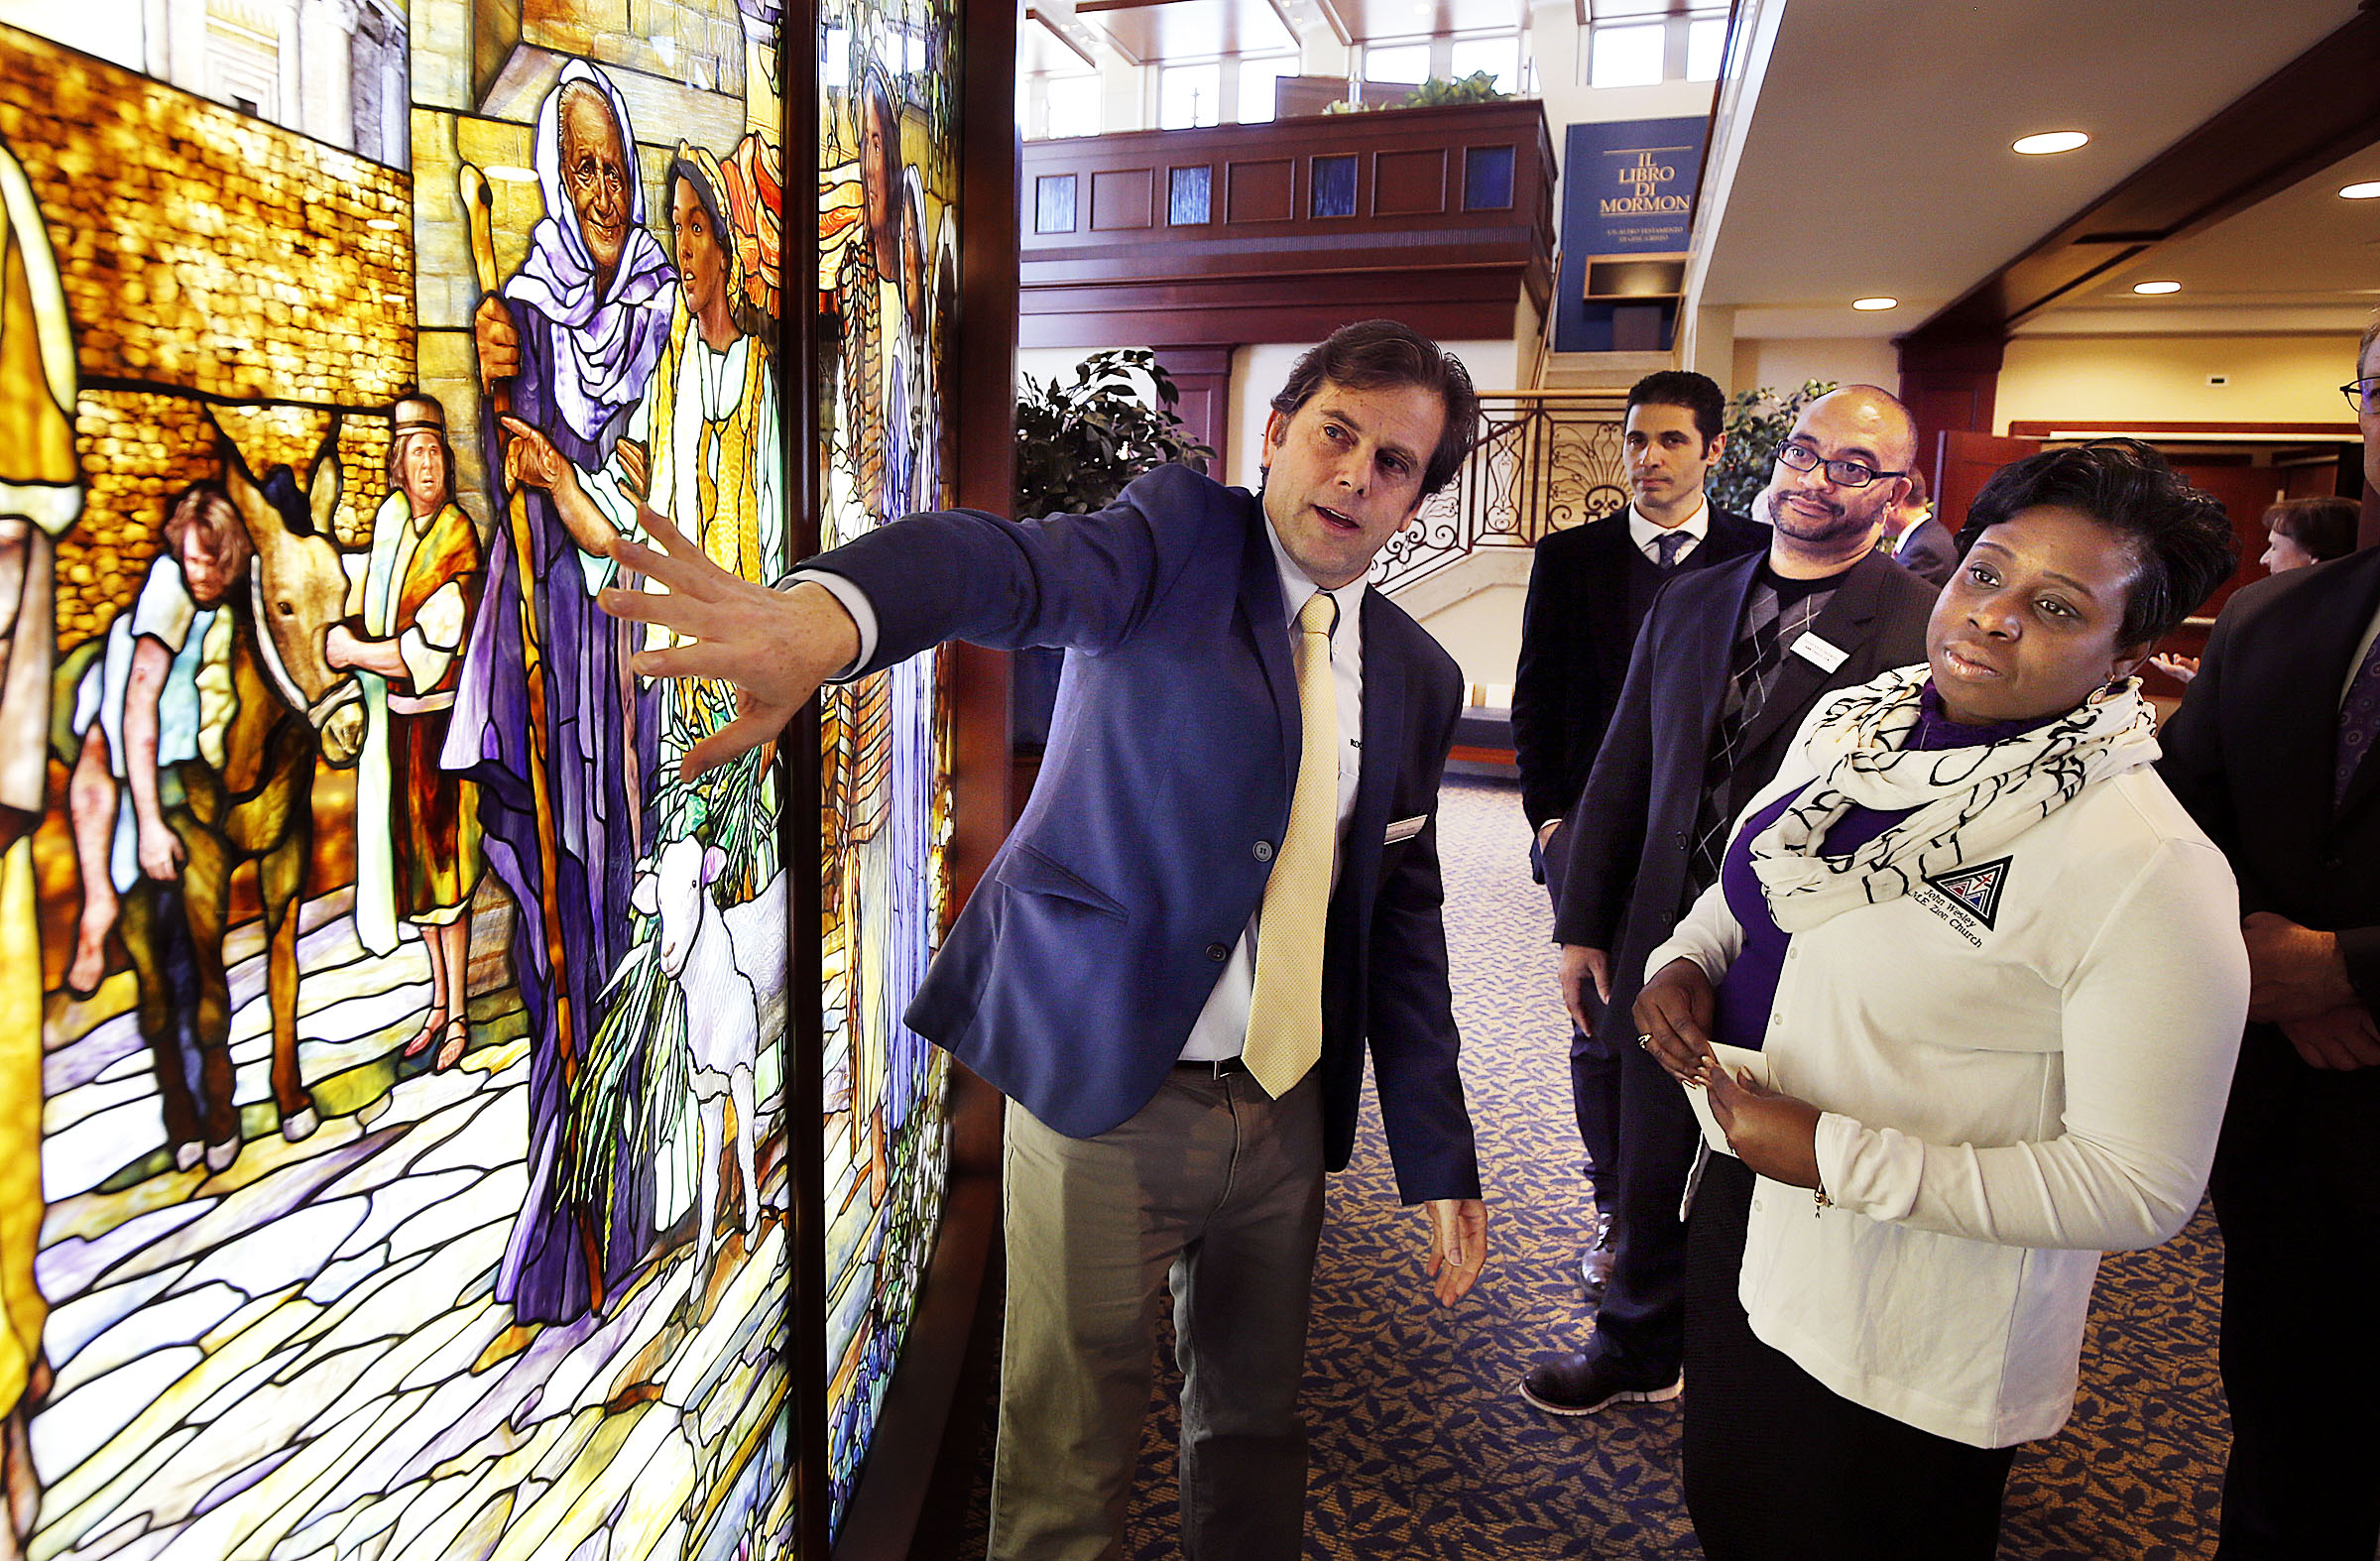 Tom Holdman, left, of Holdman Studios, discusses his company's stained glass work with Pastor Chris Zacharias and his wife, Kim, of the John Wesley A.M.E. Zion Church during a tour of the Rome Italy Temple and the Rome Italy Temple Visitors' Center on Tuesday, Jan. 15, 2019.